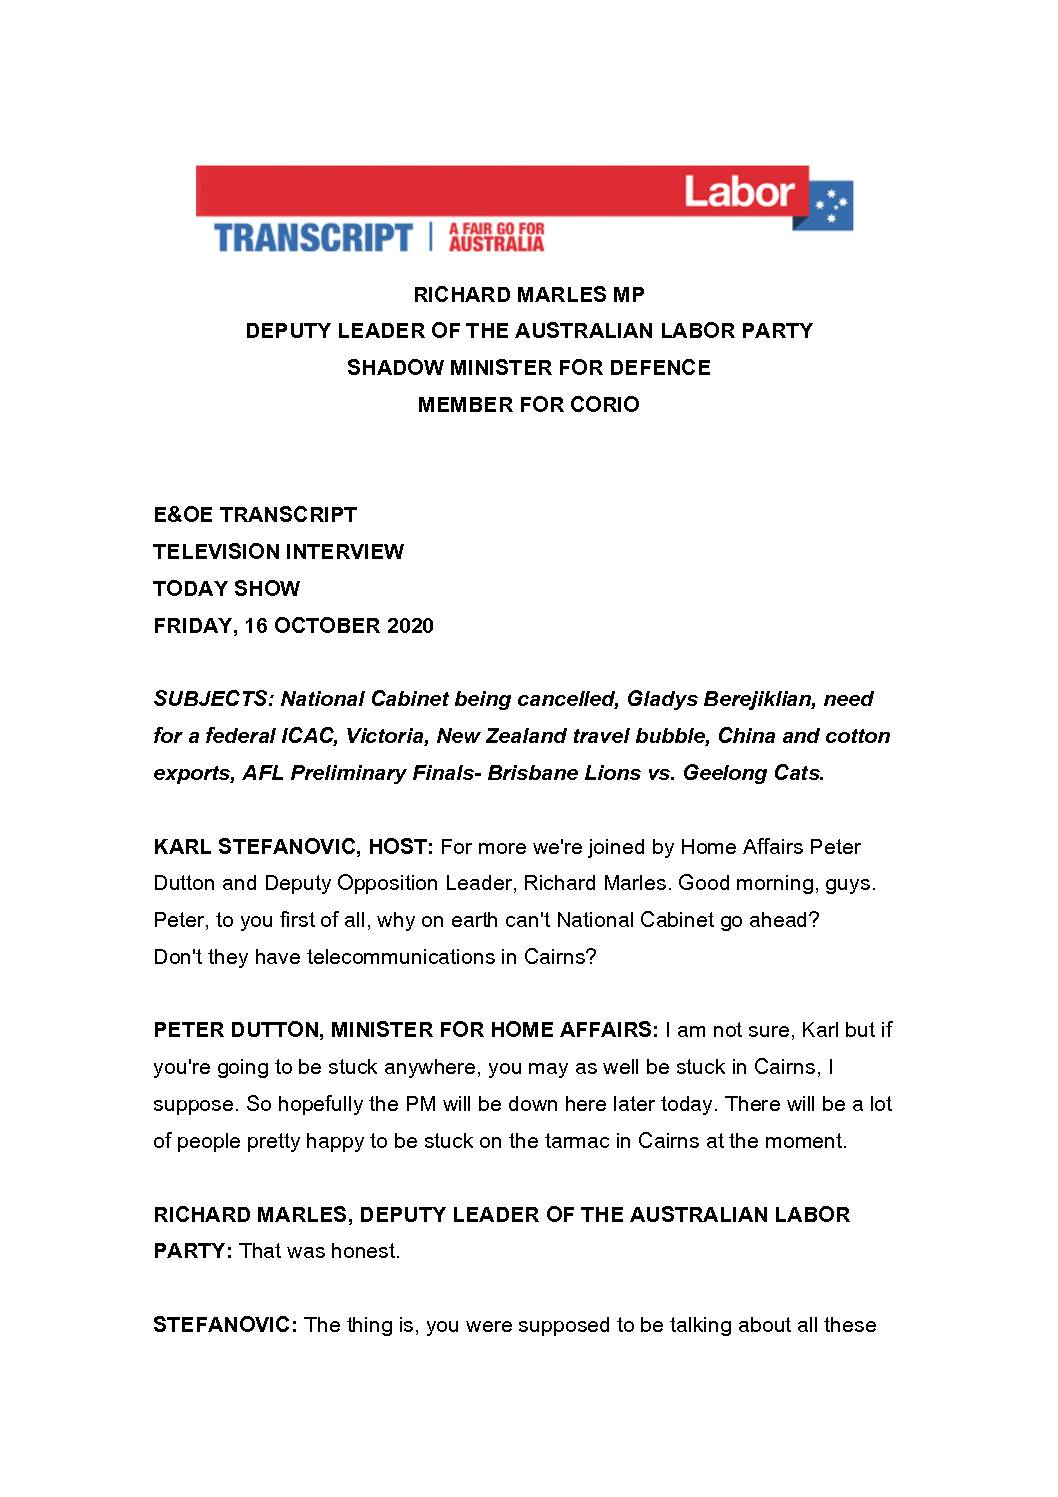 20.10.16-CHANNEL-9-THE-TODAY-SHOW-TRANSCRIPT